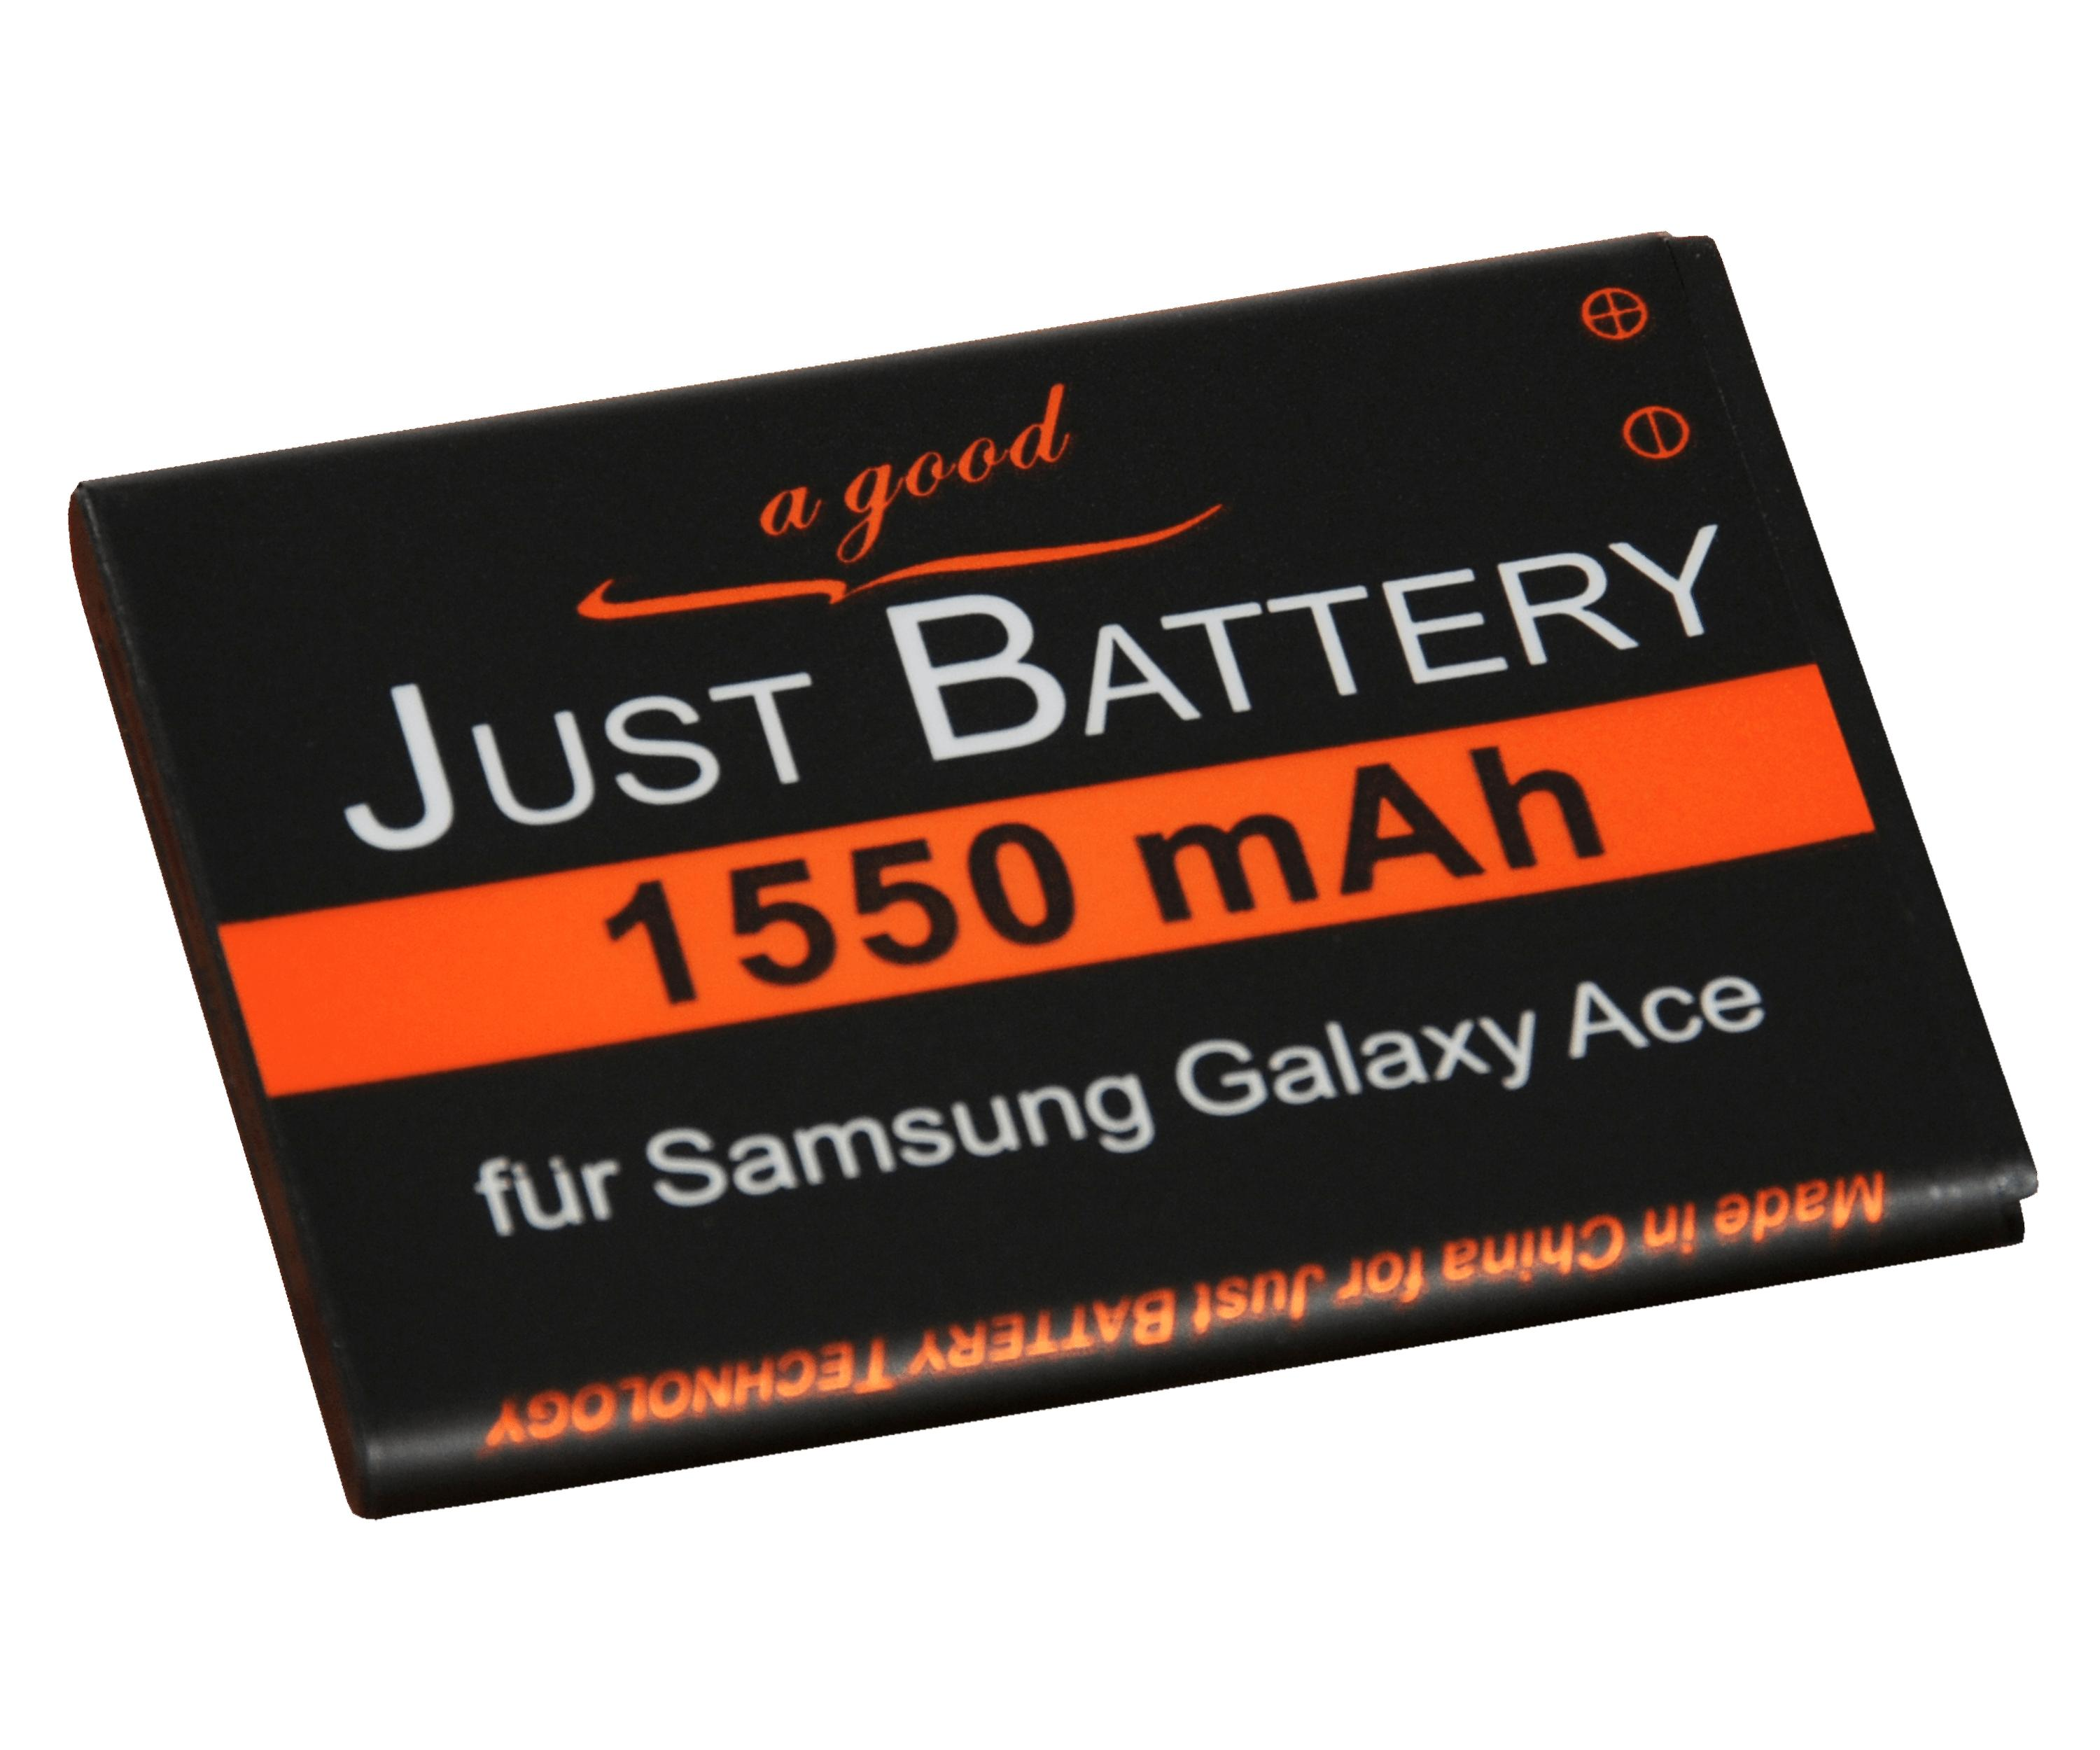 Battery for Samsung Galaxy ACE GT-s5830